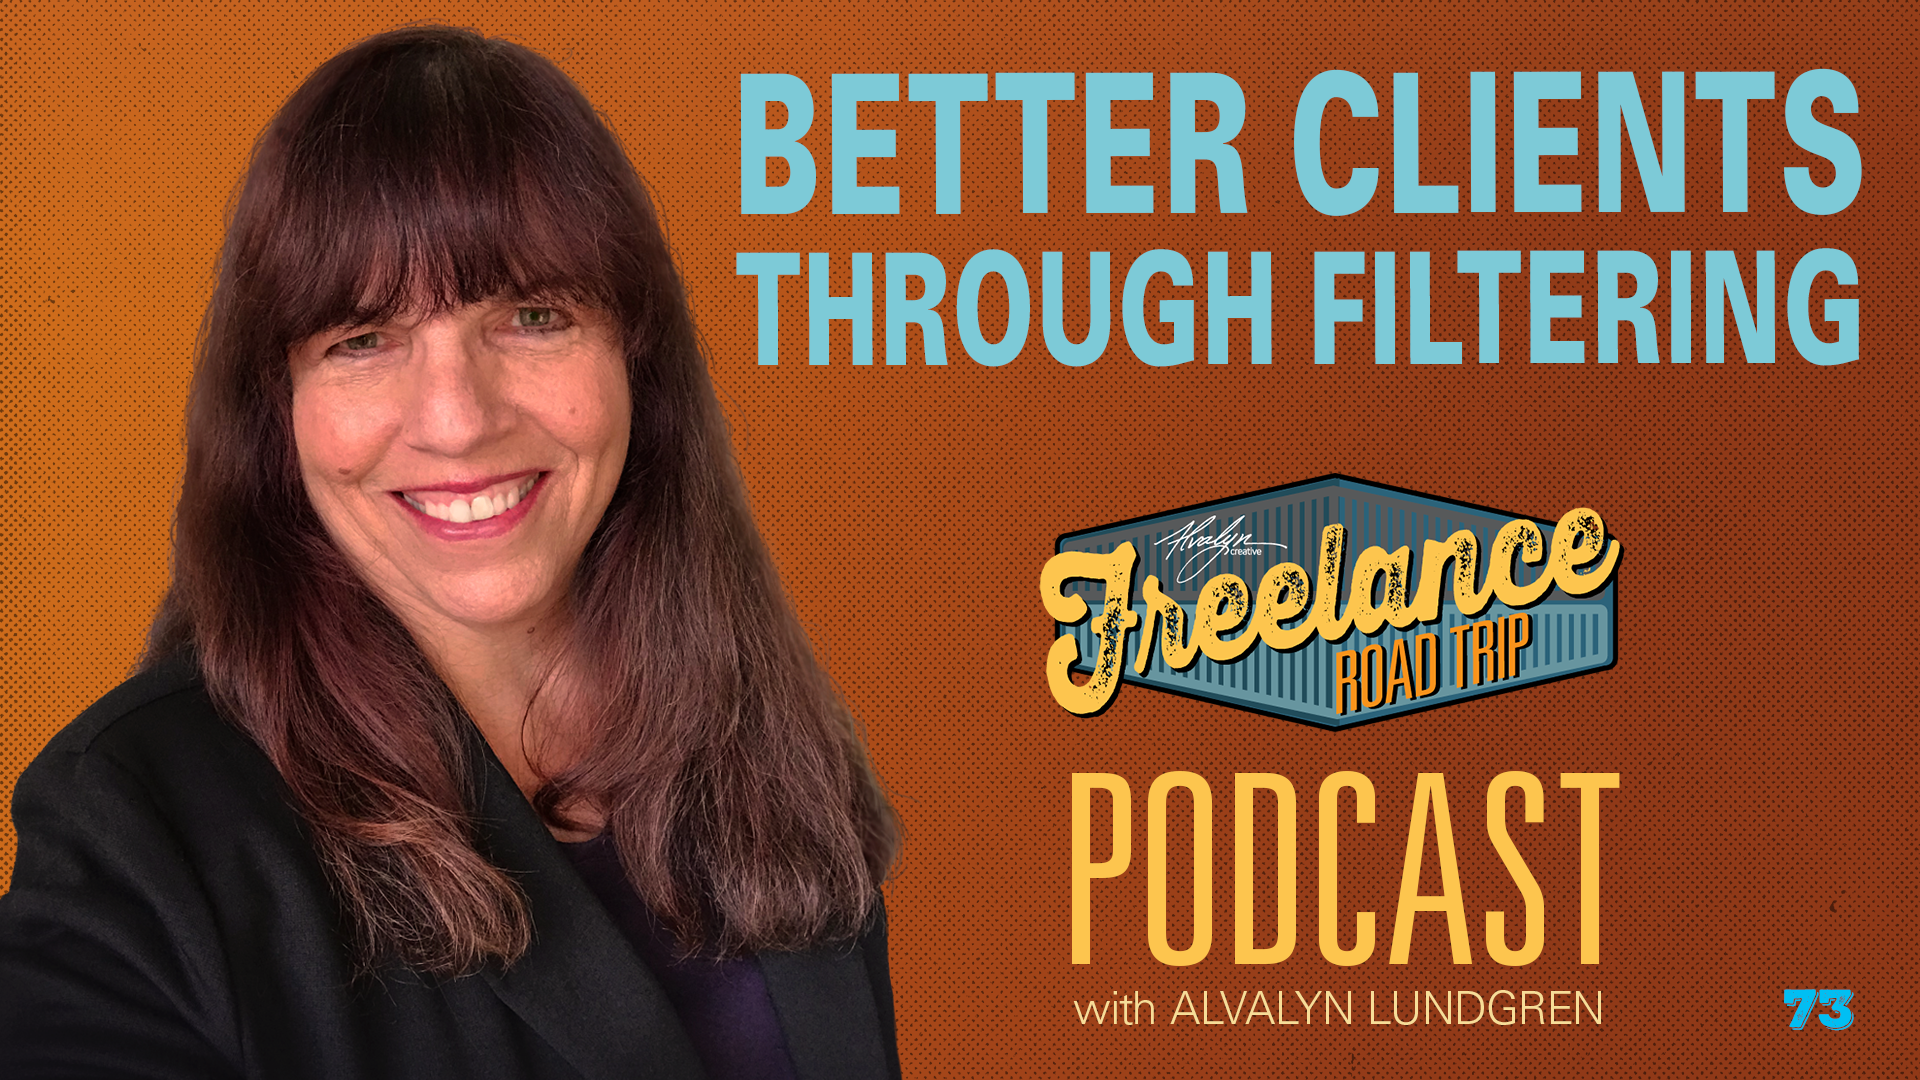 Freelance Road Trip Podcast with Alvalyn Lundgren 73 Better Clients Through Filtering